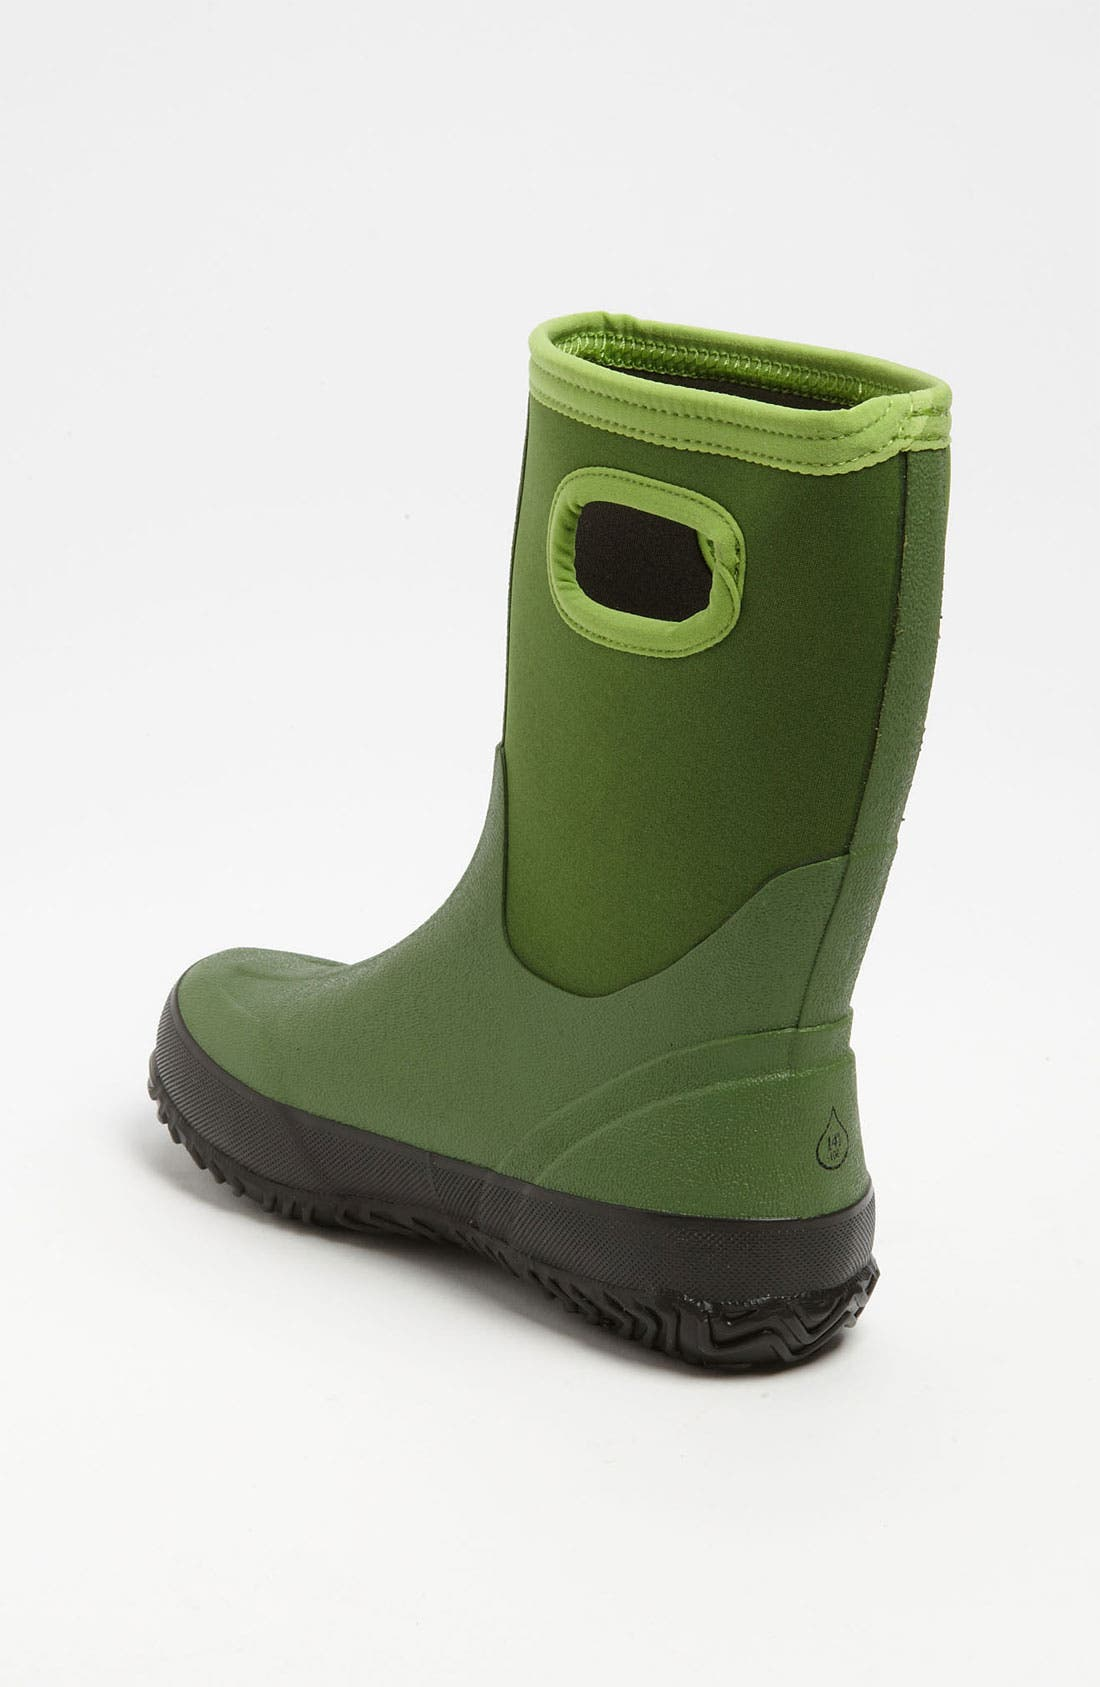 Alternate Image 2  - Bogs 'Glosh' Rain Boot (Toddler, Little Kid & Big Kid)